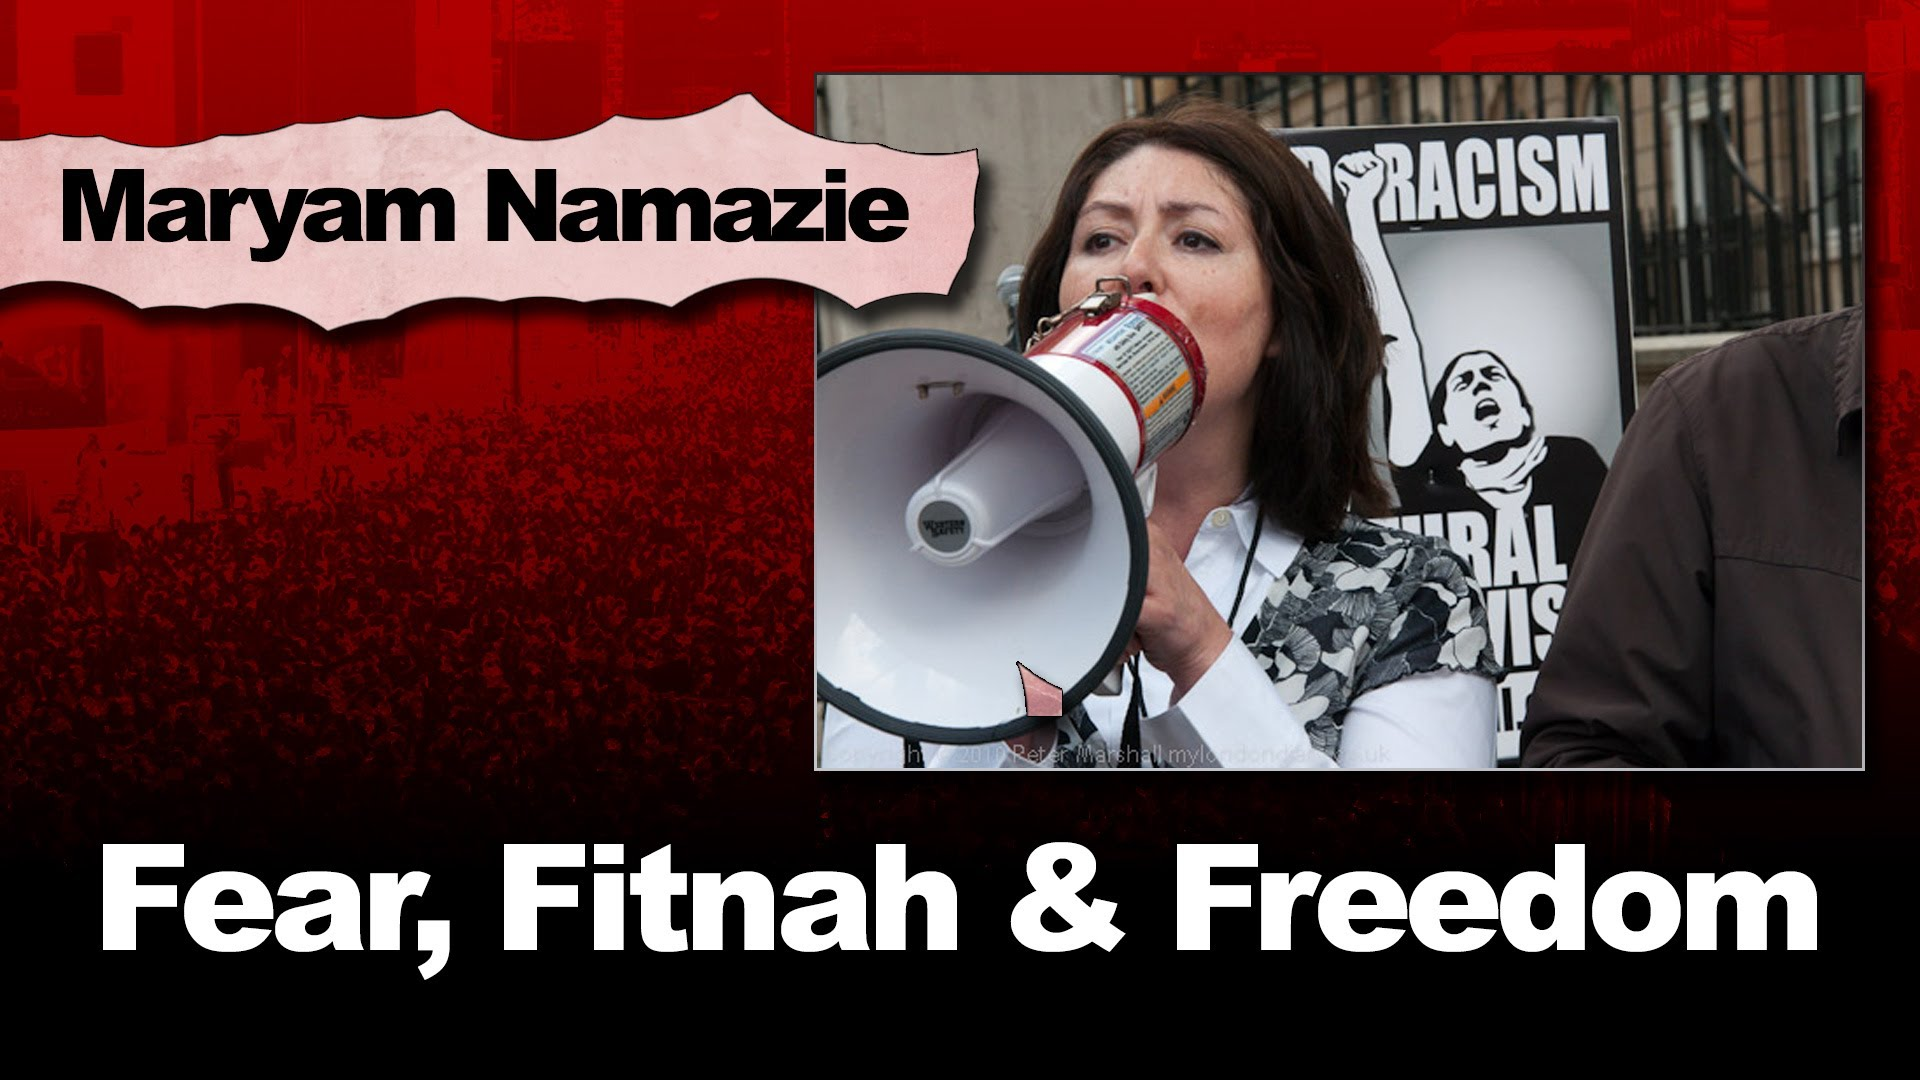 Maryam Namazie: Fear, Fitnah and Freedom, The Thinking Atheist, 8 May 2014